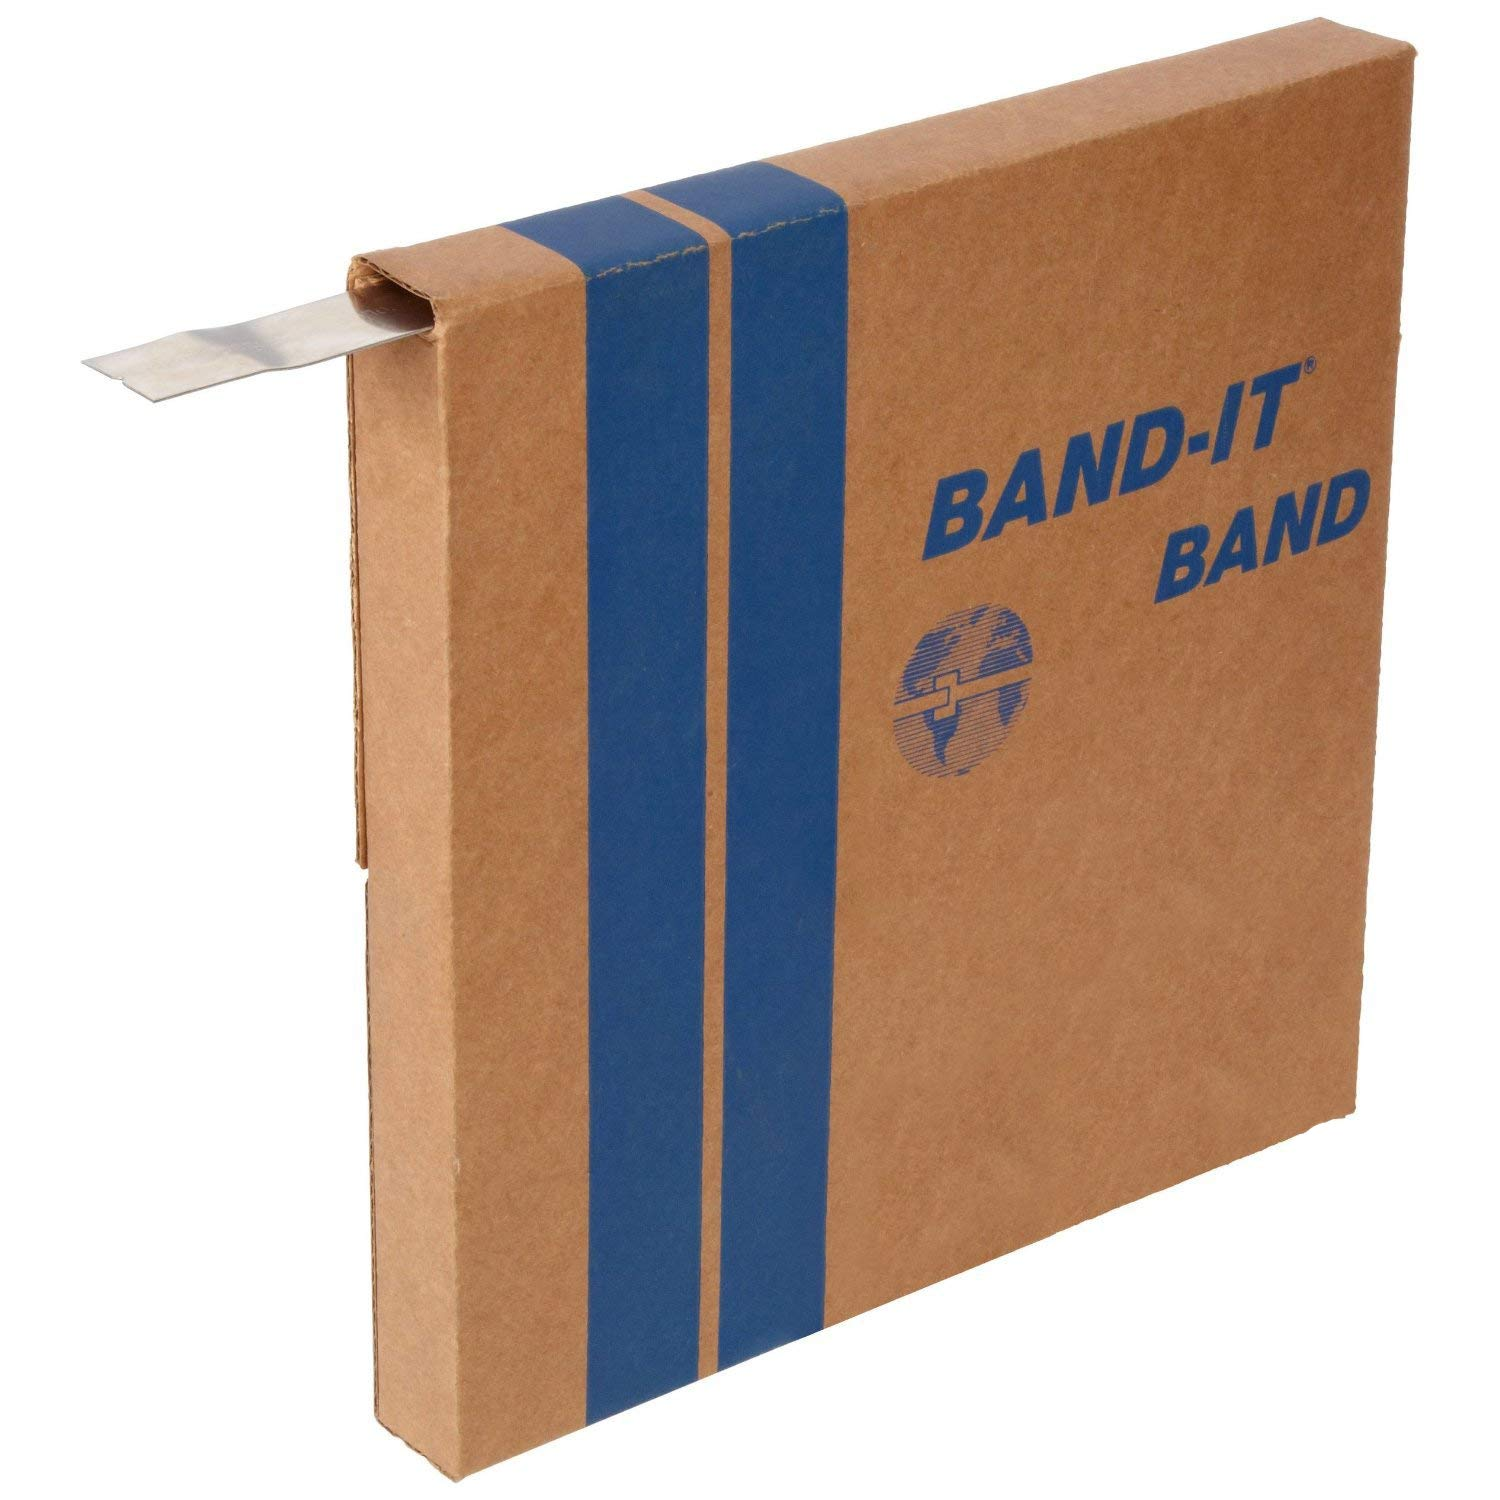 Campbell Fittings C205 Band-It Band 201, 5/8'', 0.63'' ID, Stainless Steel